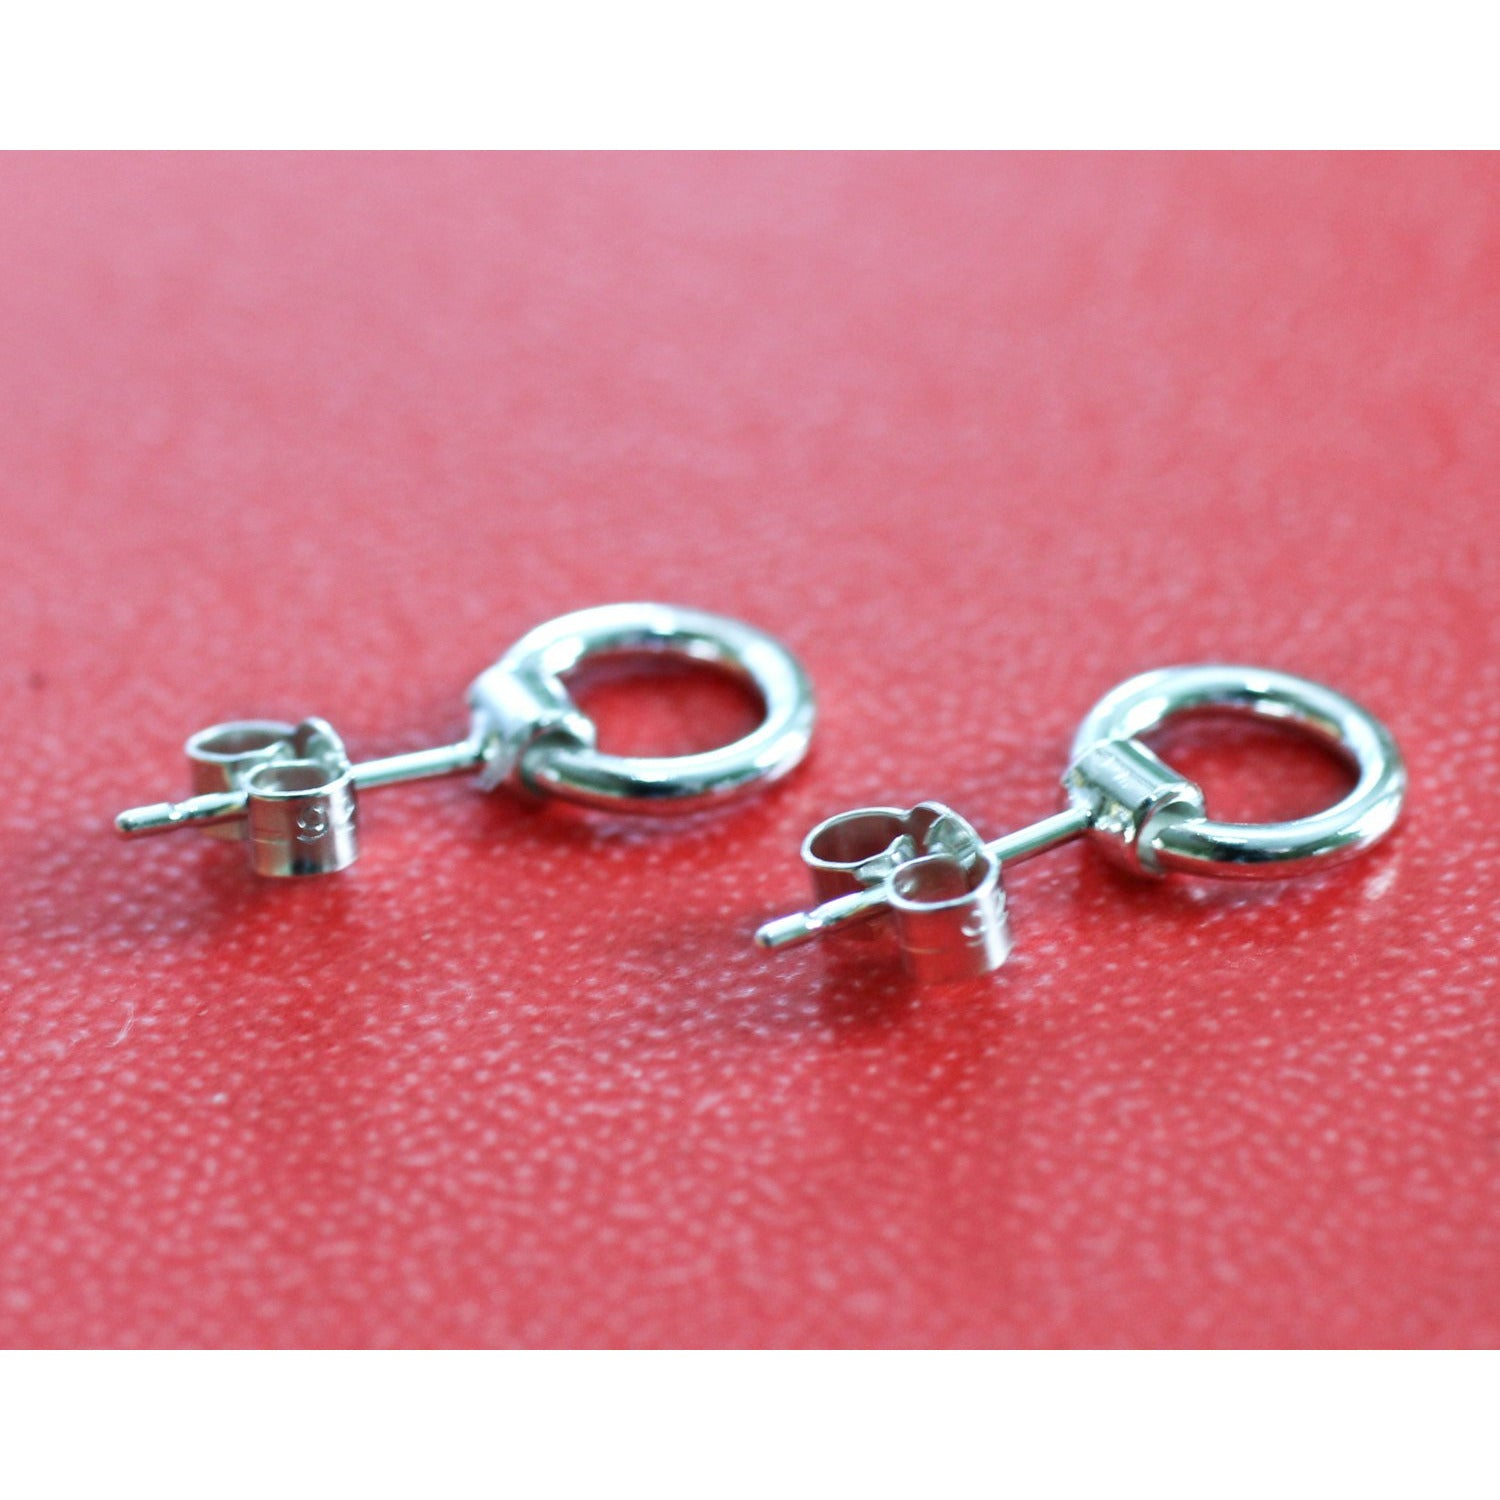 BDSM RING OF O SHACKLE STUD EARRINGS, STERLING SILVER.